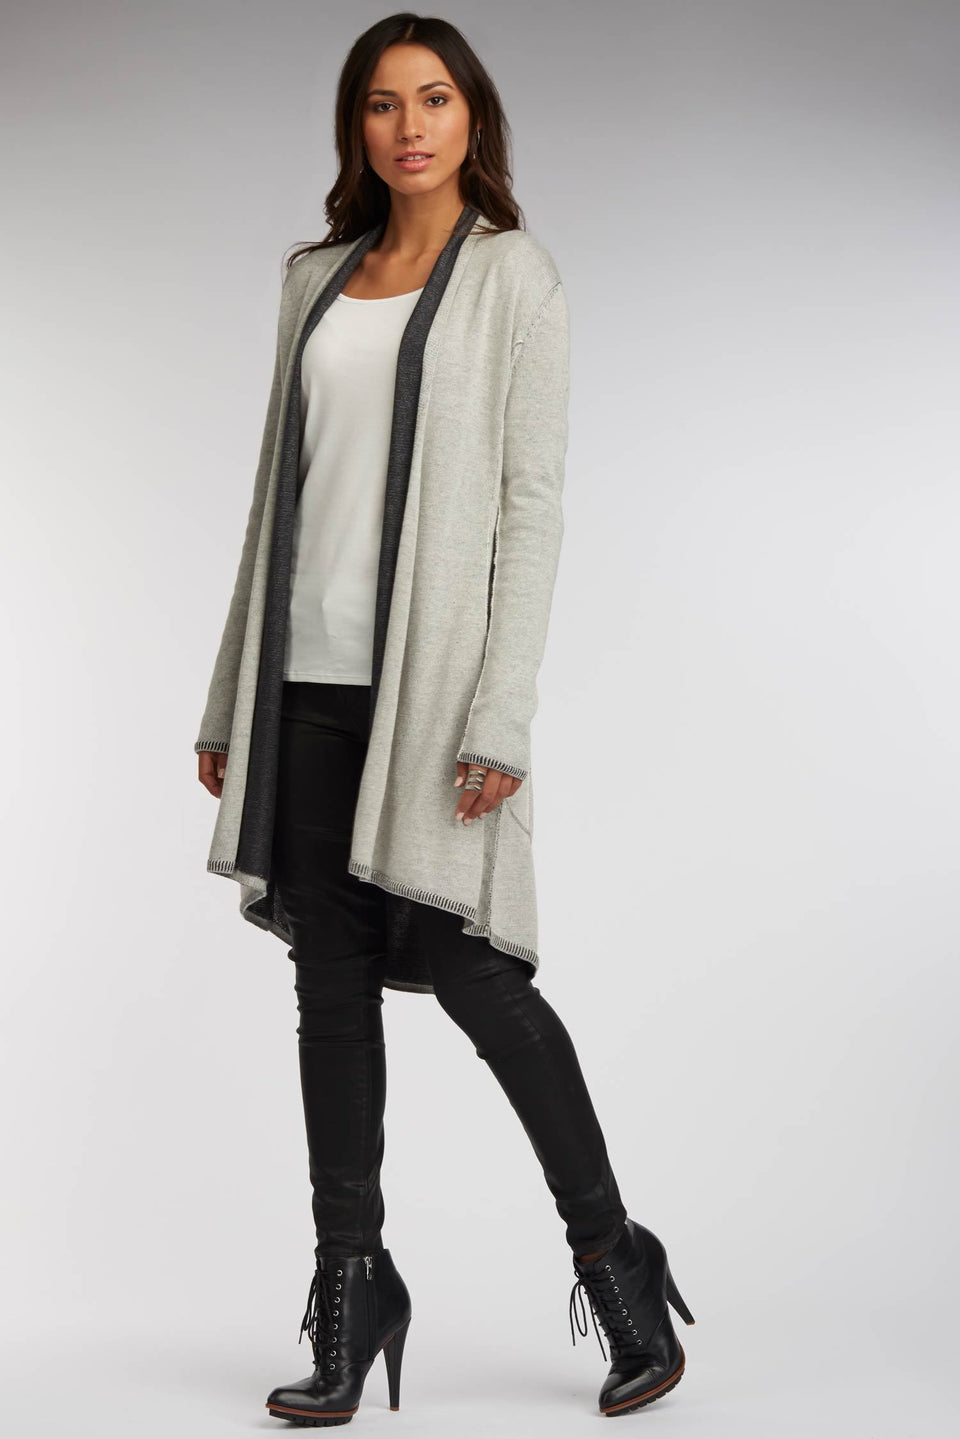 Reversible Cardigan in Black and Ivory